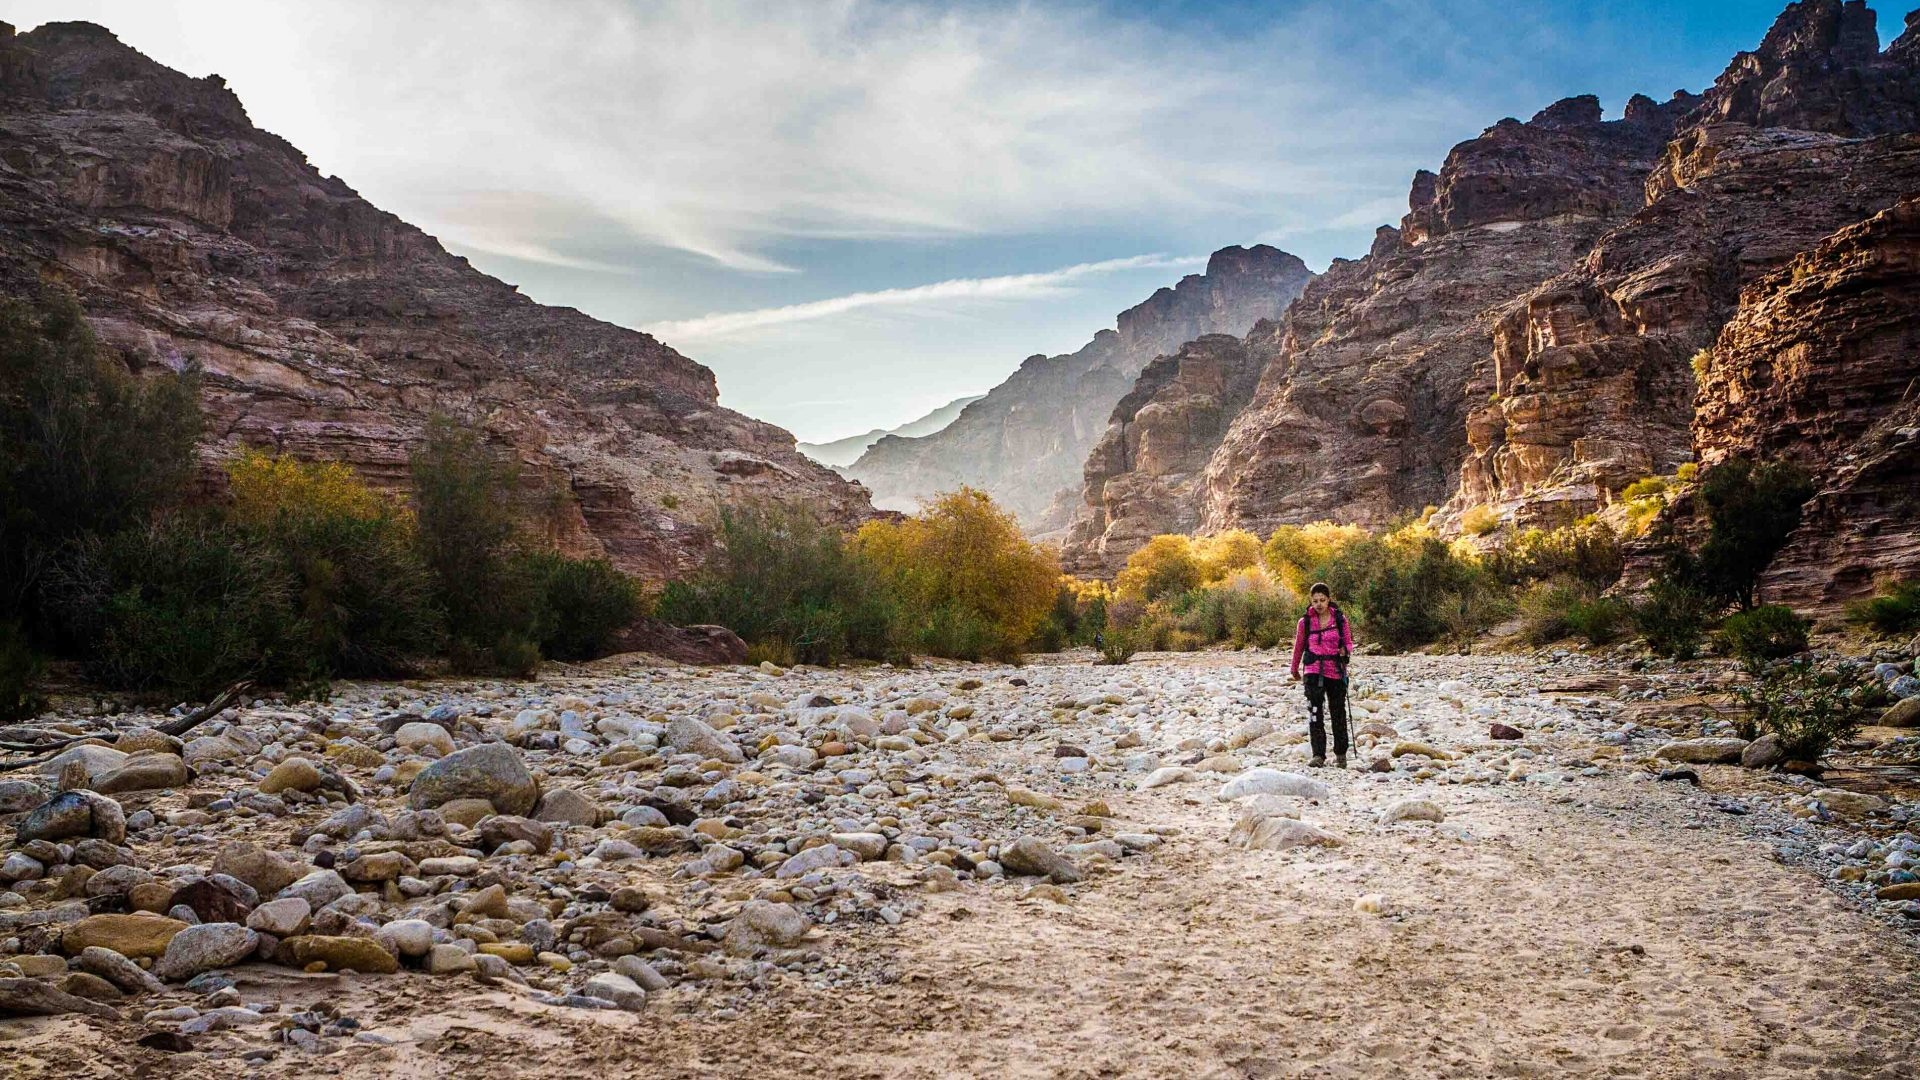 A hiker is framed by mountains during the hike along the Jordan trail, from Gaa Mriebed to Wadi Gseib along the Jordan Trail.